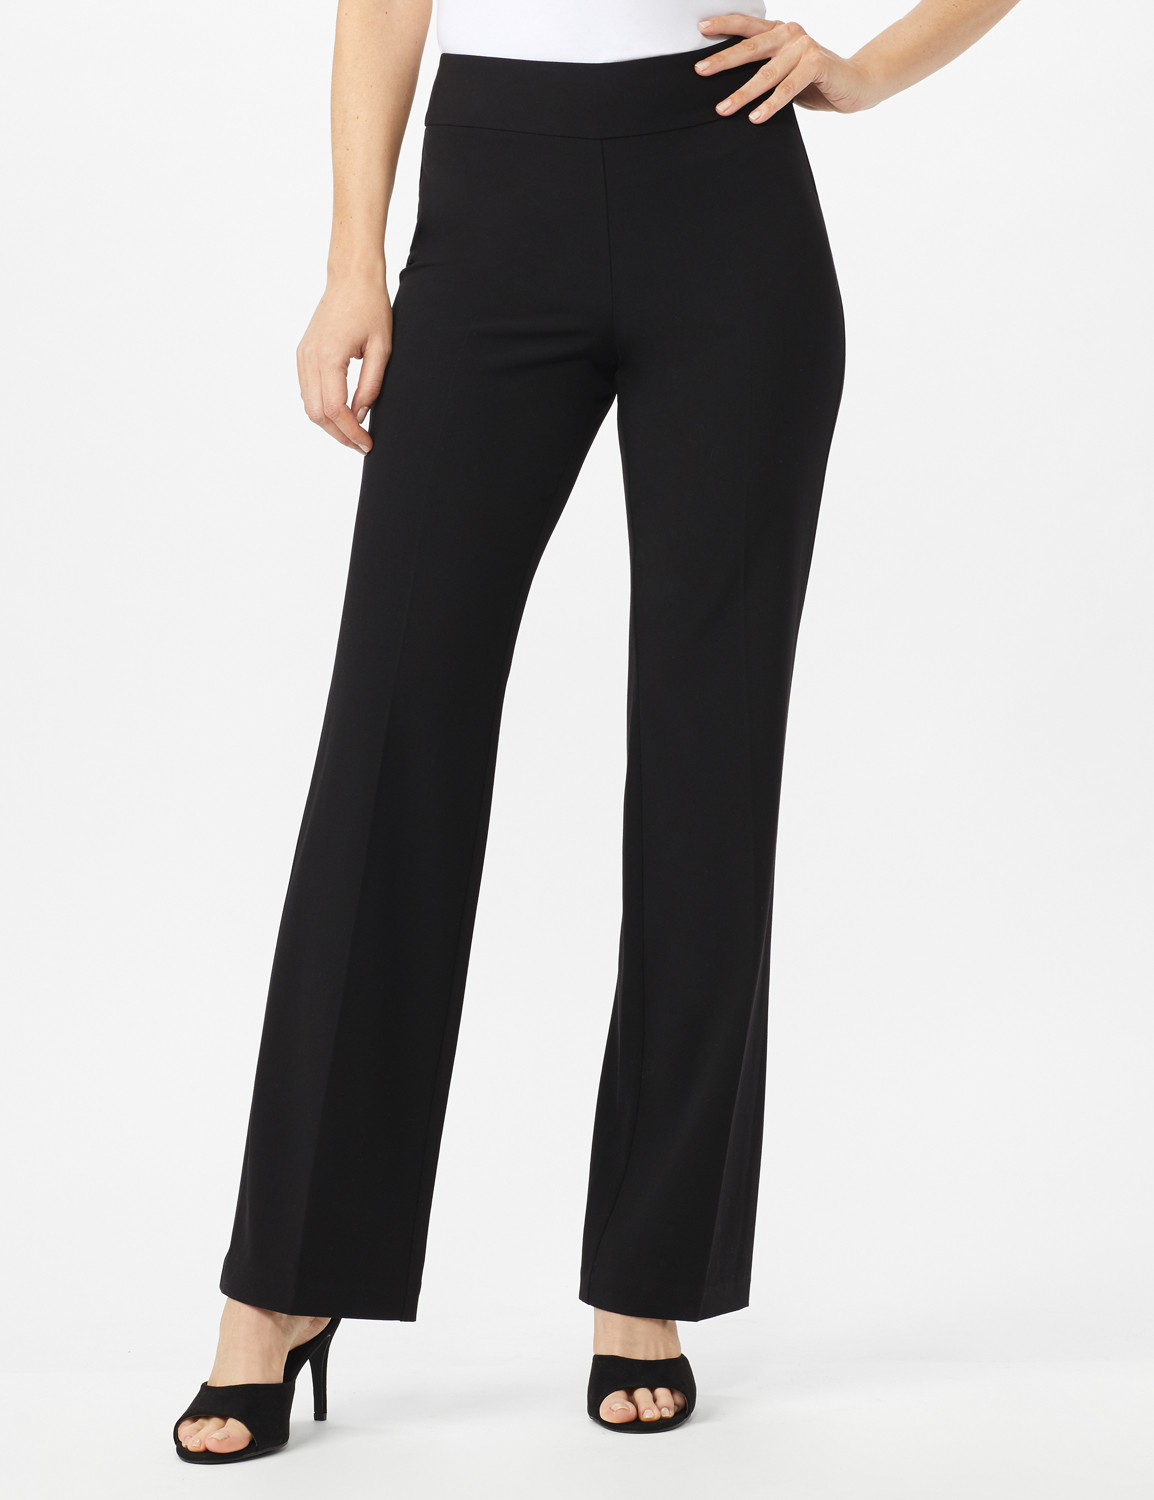 Roz & Ali Secret Agent Tummy Control Pants - Average Length -Black - Front